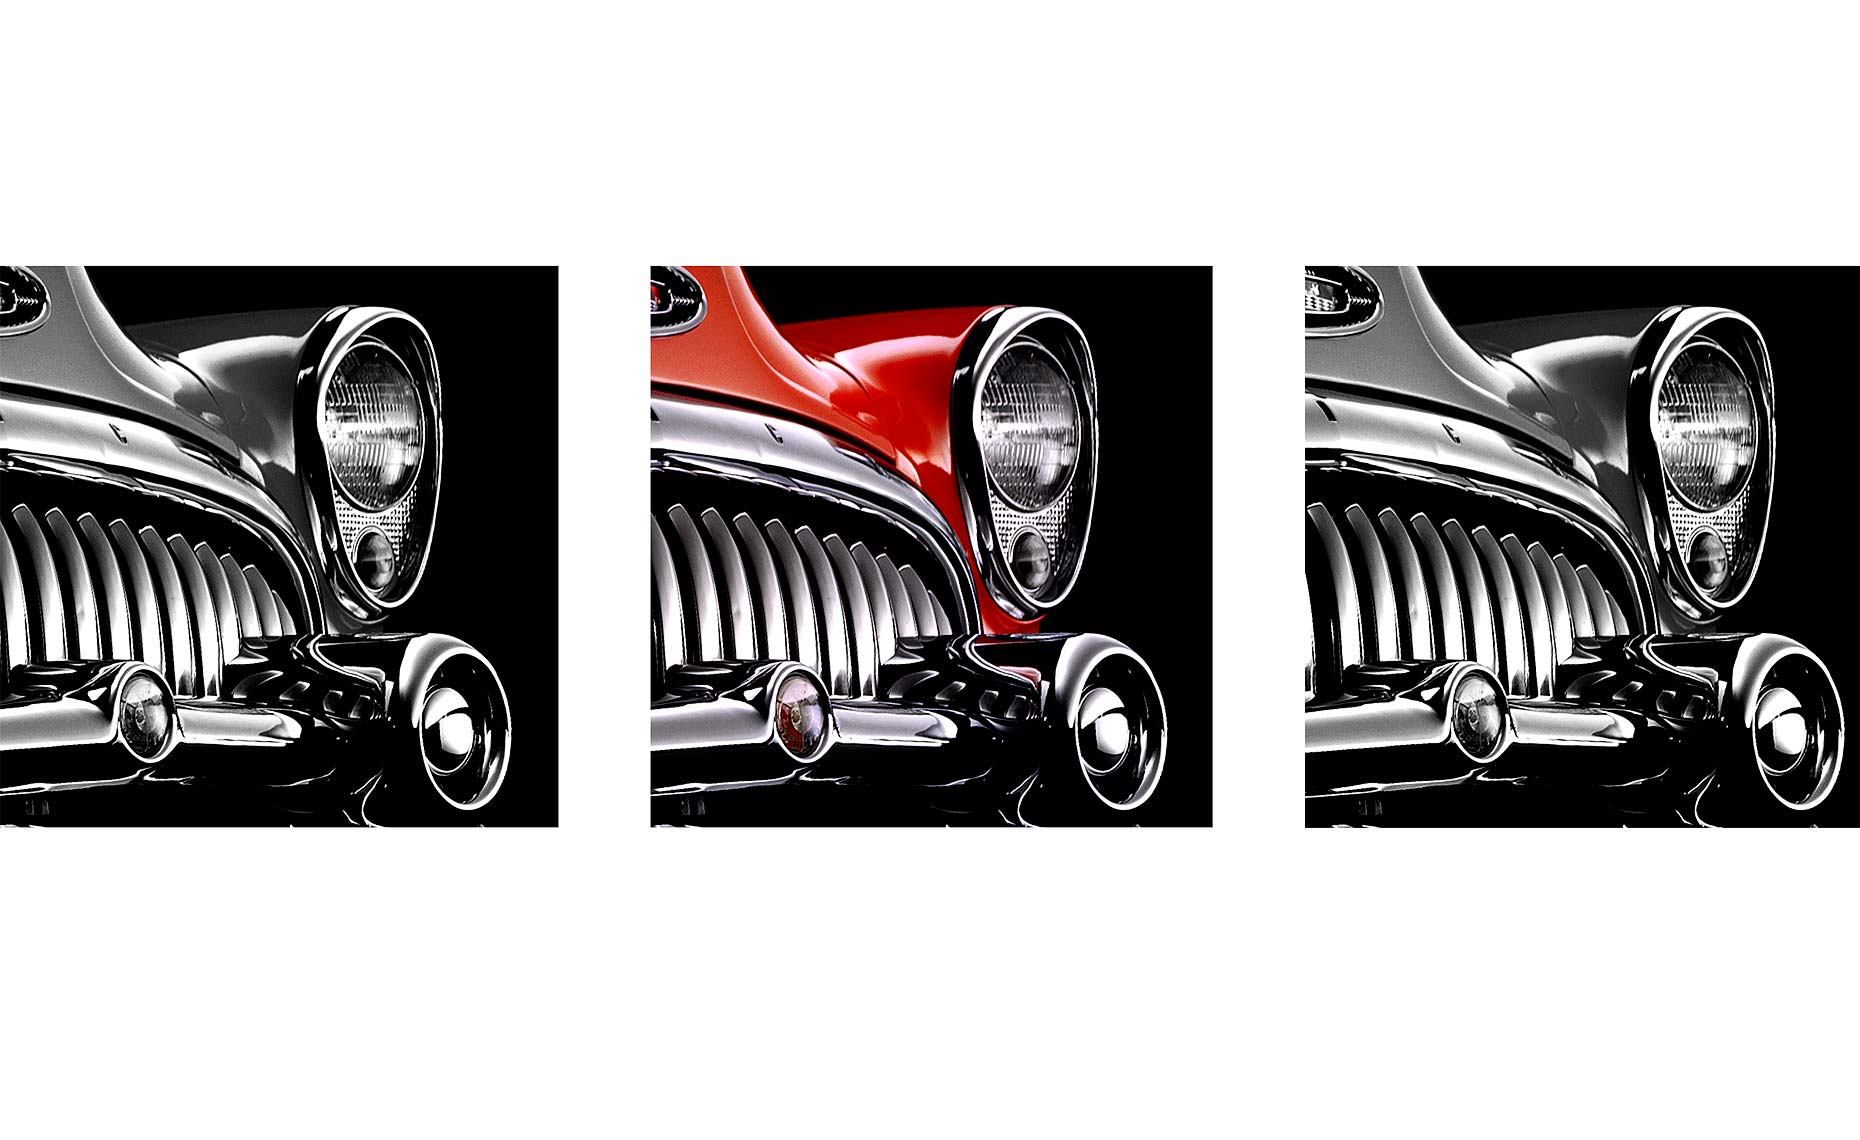 1952 buick-grille detail-graphic.jpg